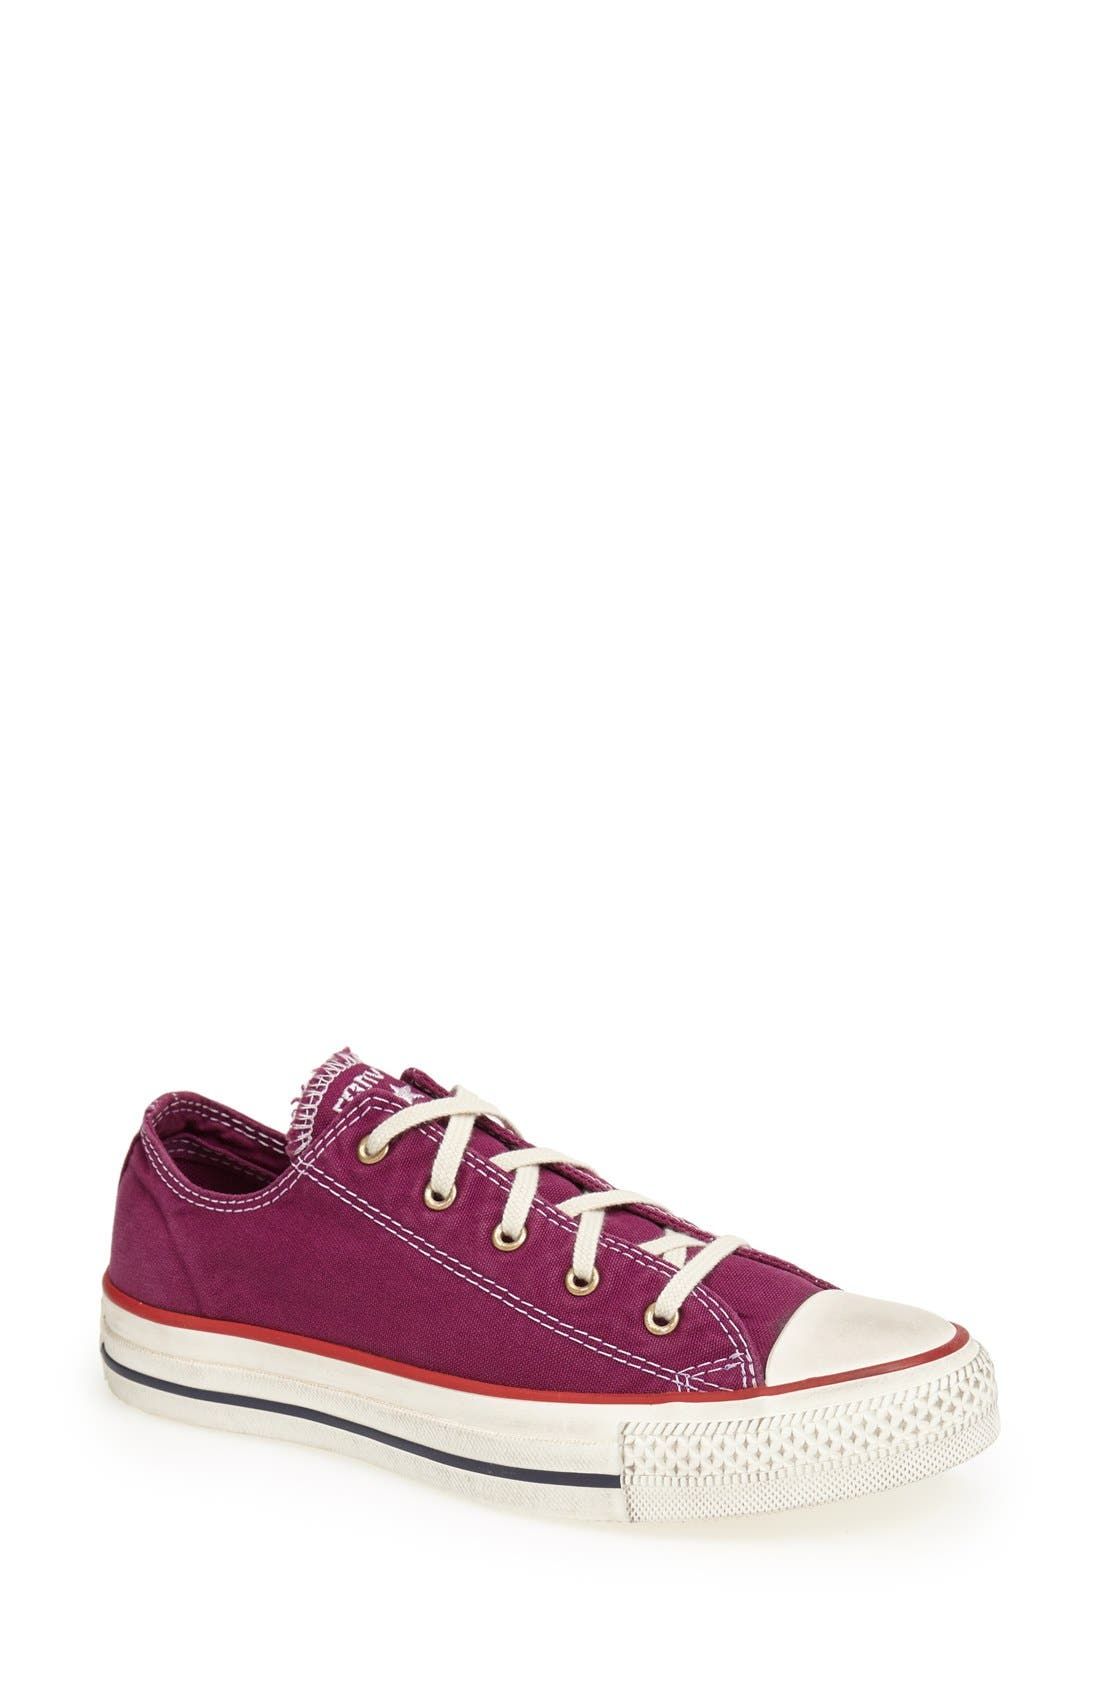 Alternate Image 1 Selected - Converse Chuck Taylor® All Star® Washed Low Sneaker (Women)